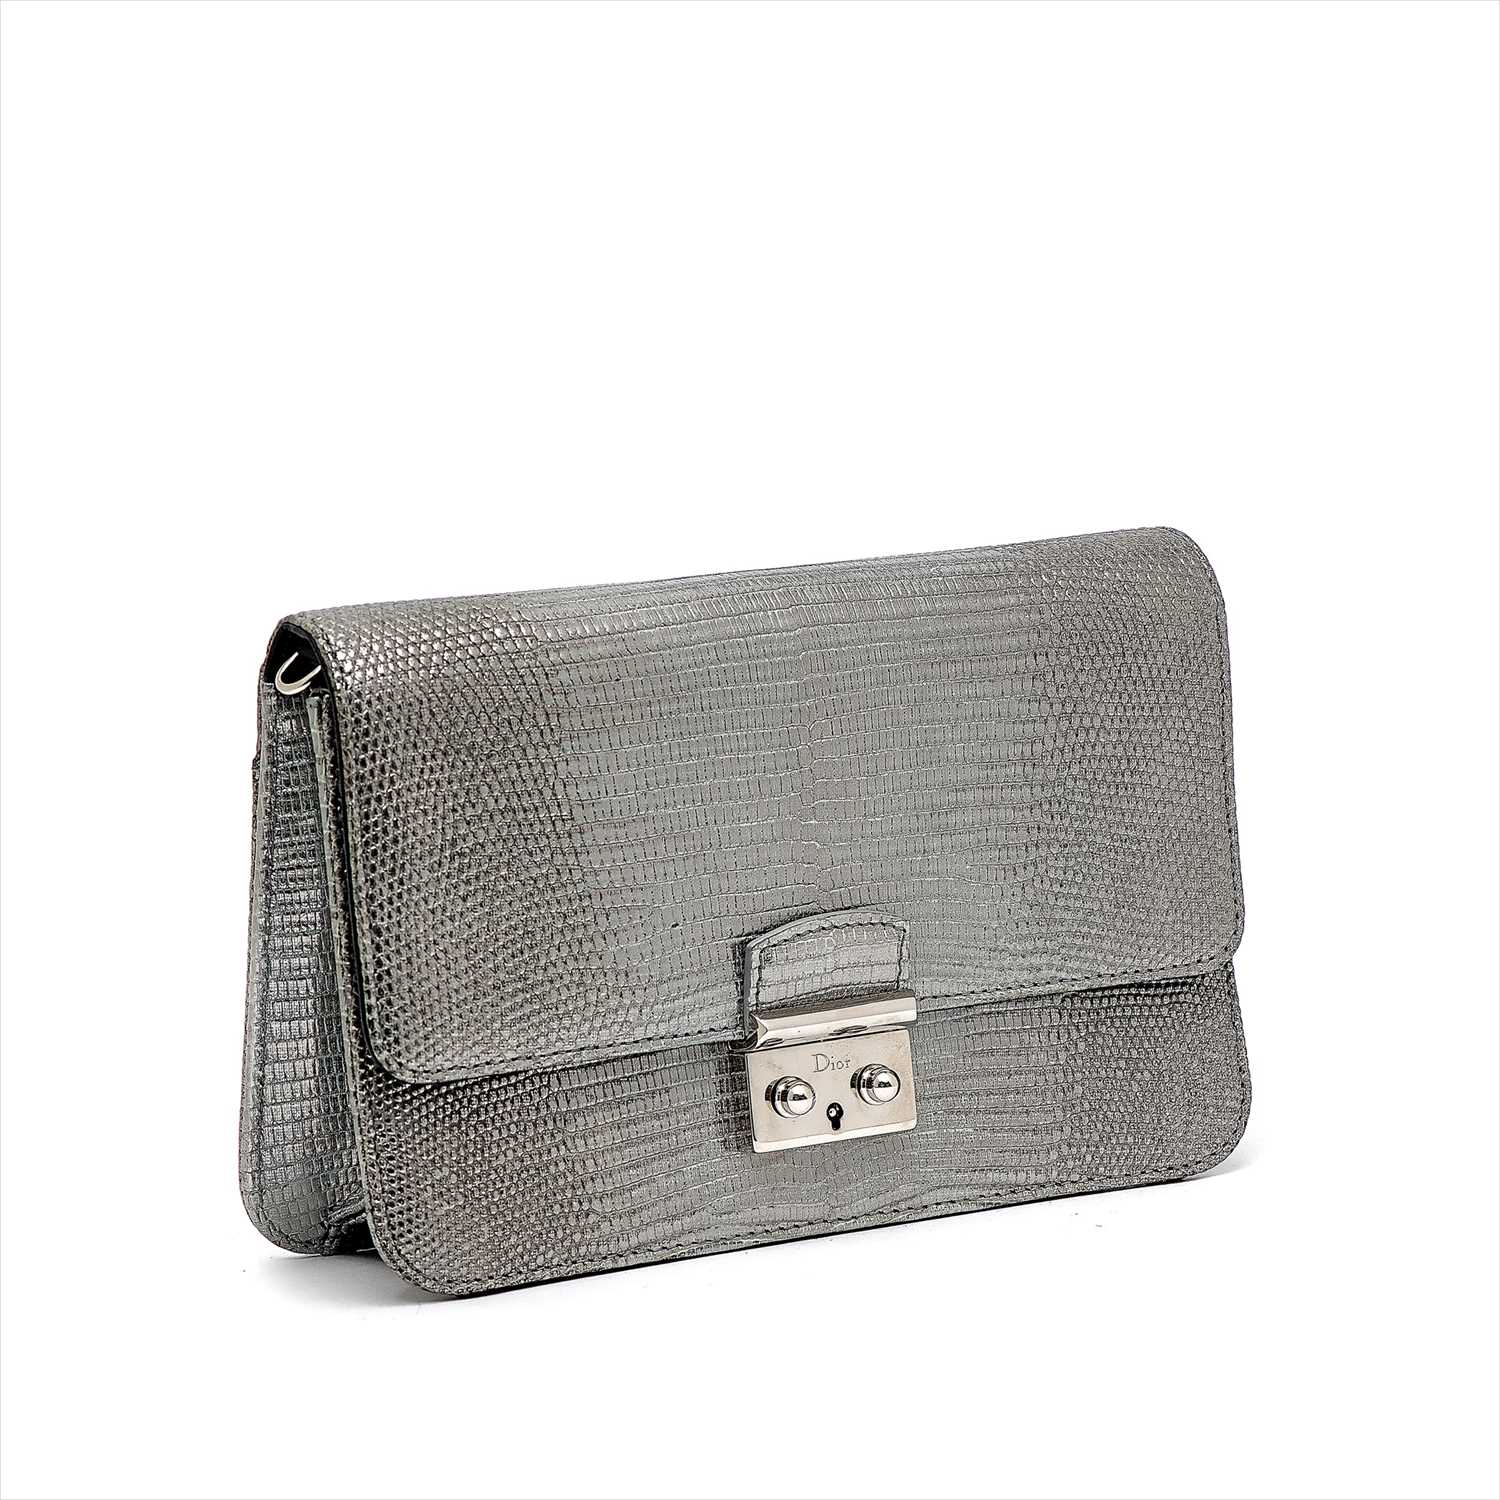 Lot 3-Christian Dior - a silver embossed leather handbag.